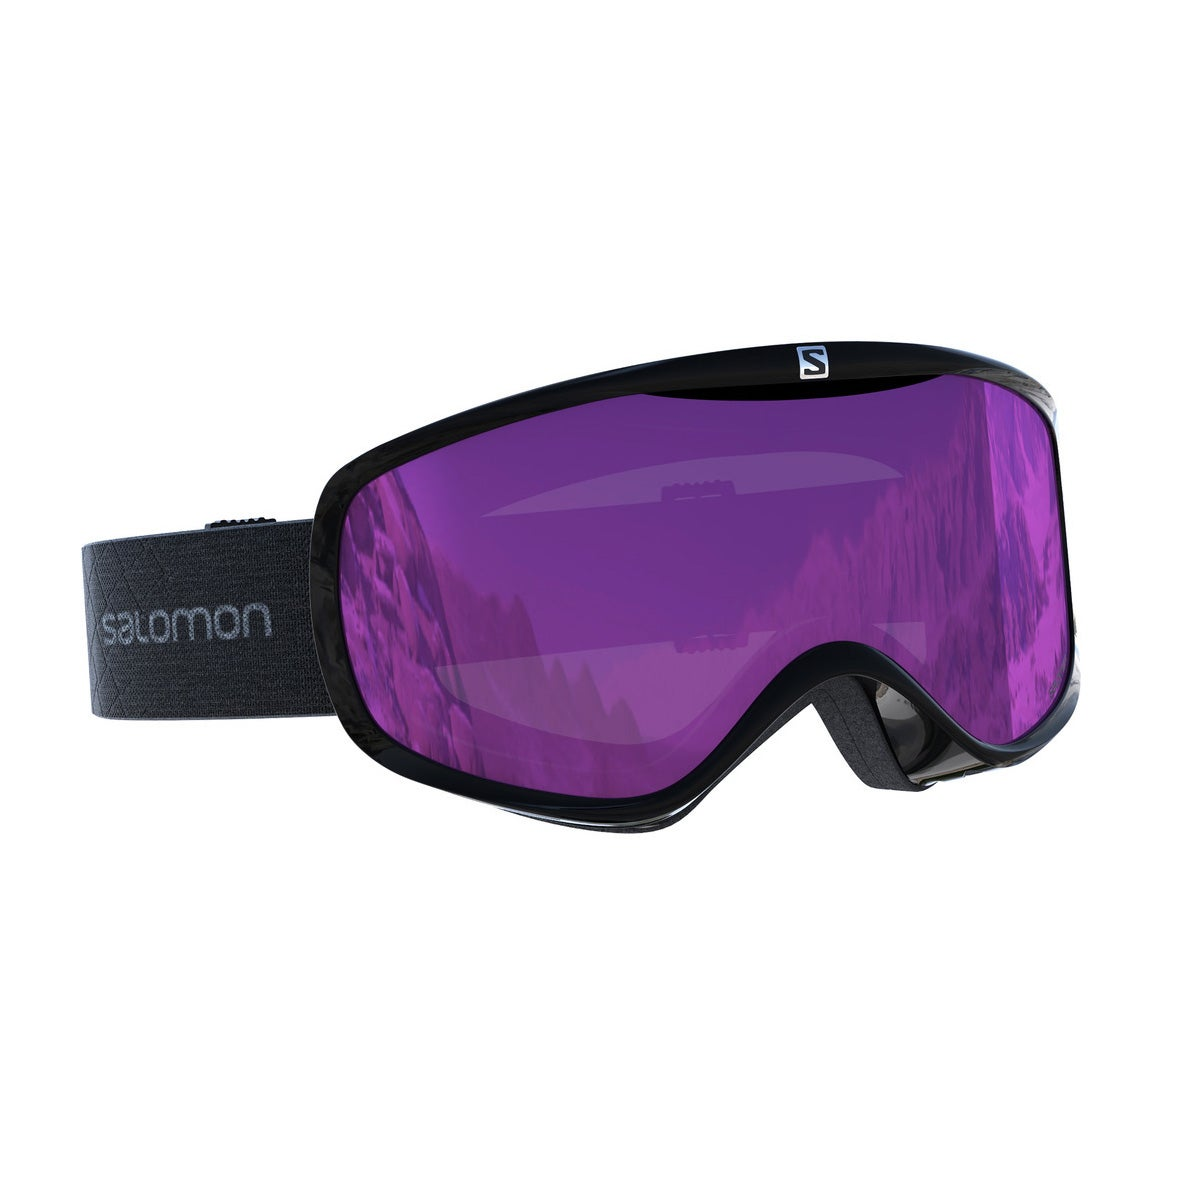 Salomon Sense Black Damen Schneebrille - Ruby Multilayer